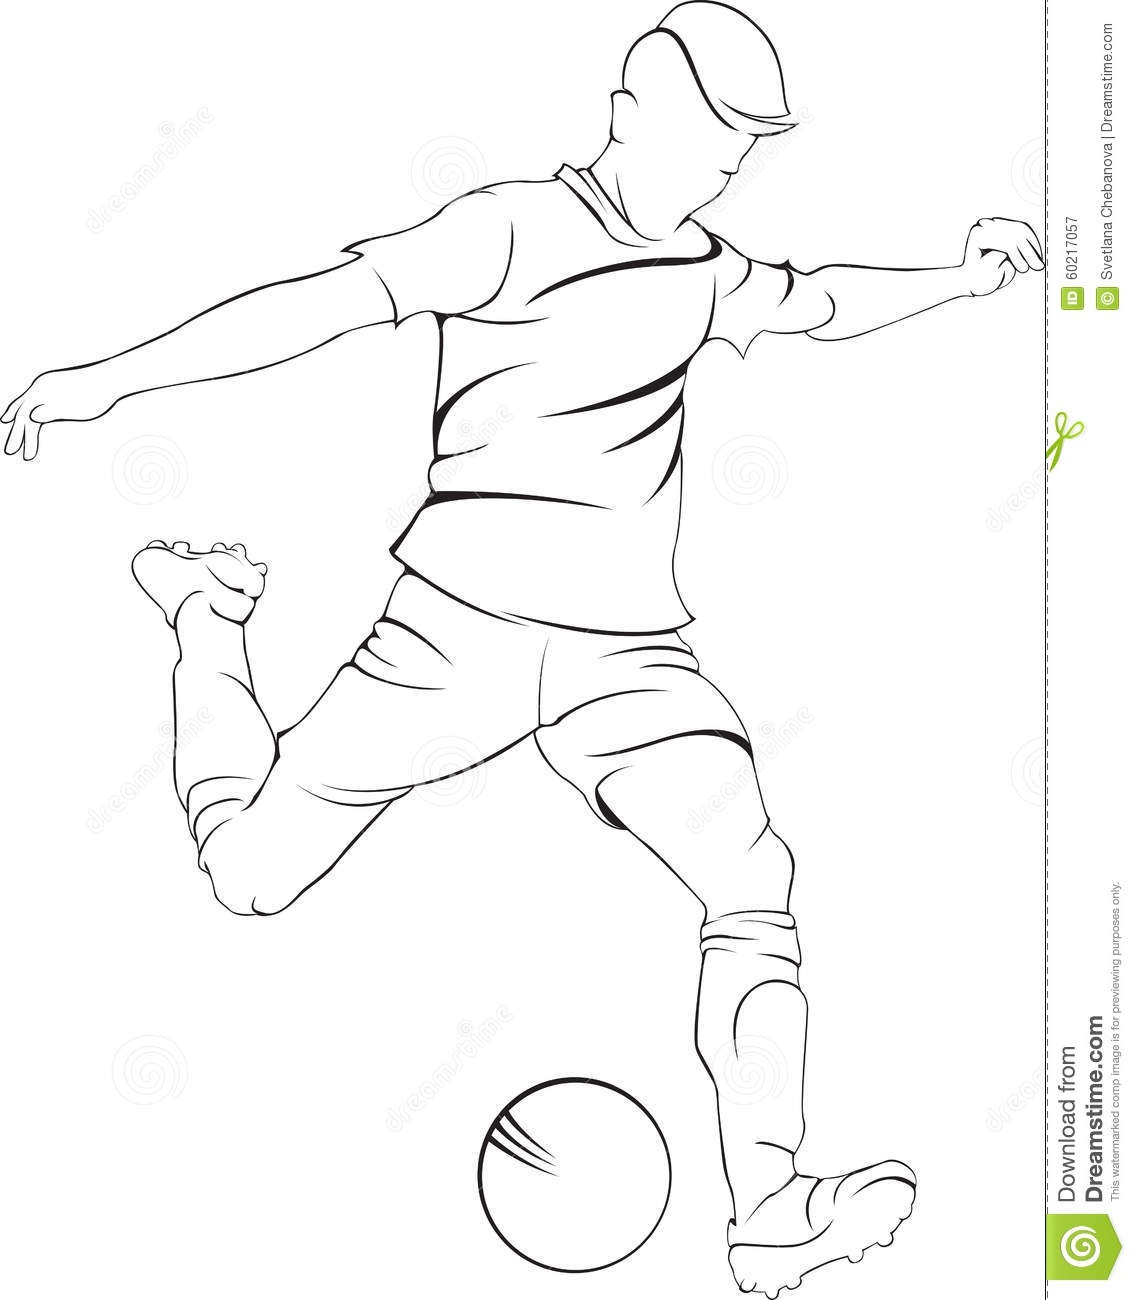 football player drawing steps how to draw a football player step by step drawing steps football drawing player